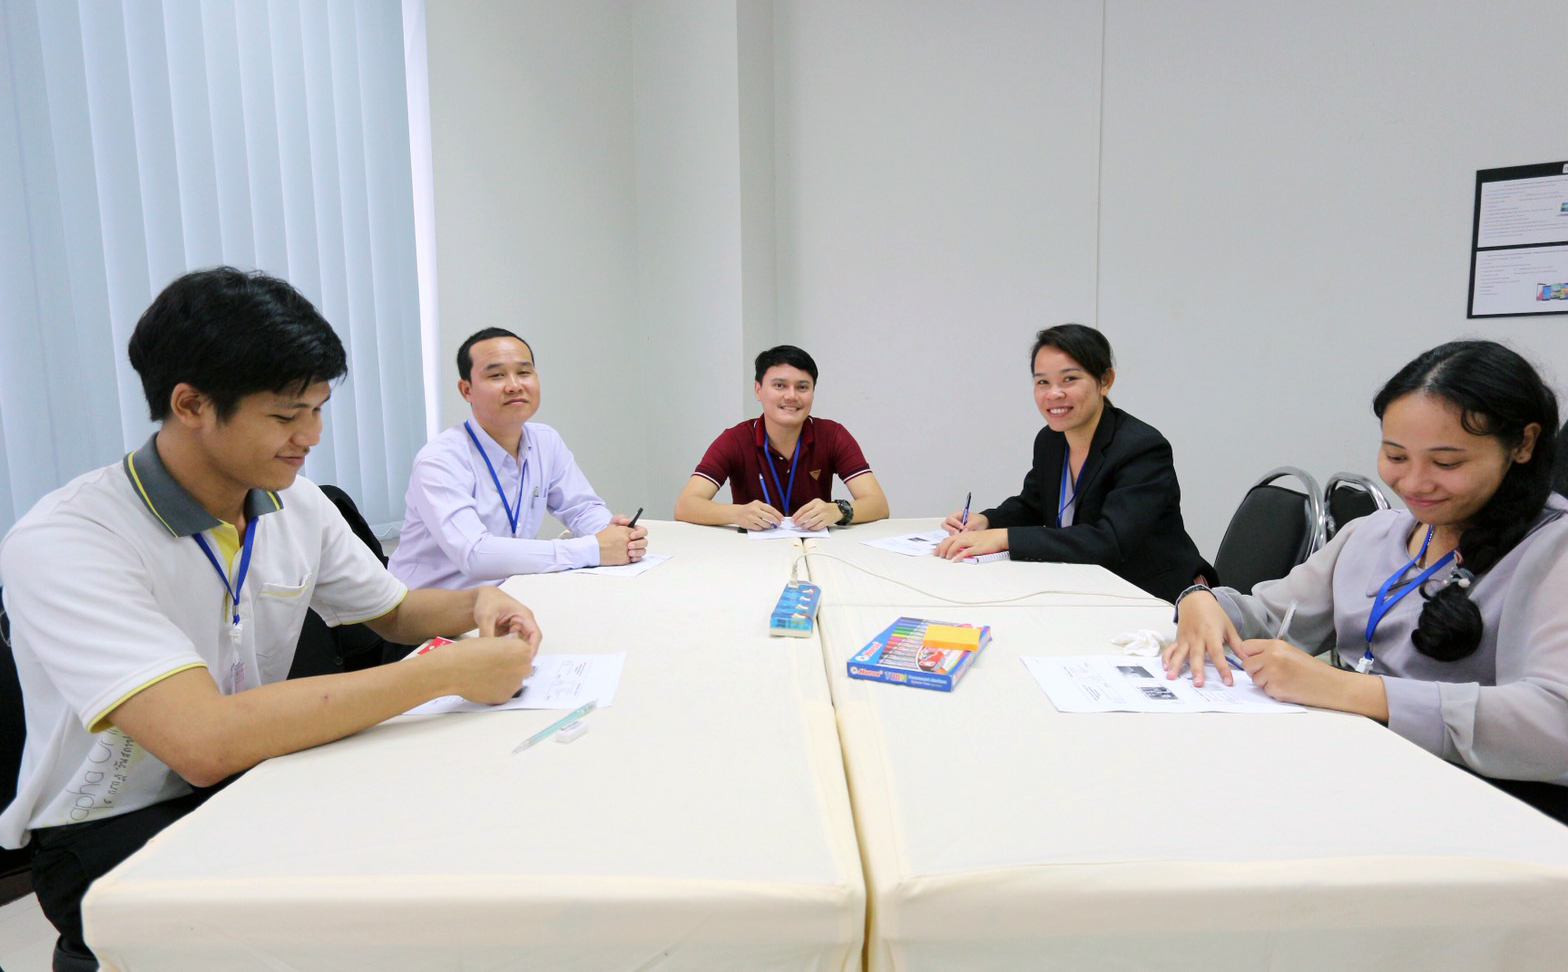 Five Thai teacher students trained by Wintec